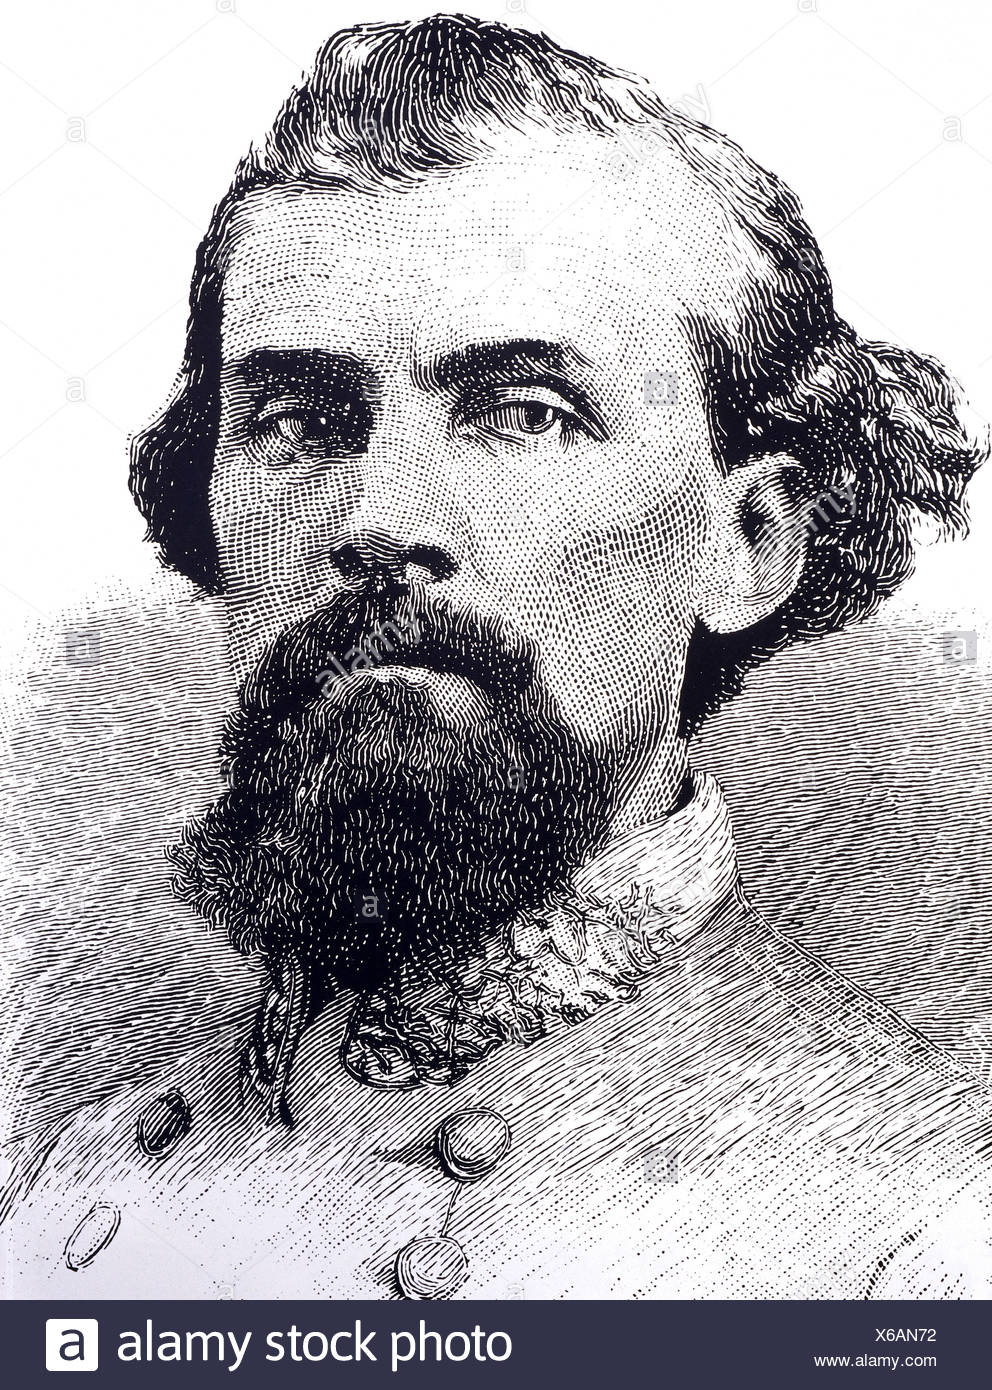 Forrest, Nathan Bedford, 13.7.1821 - 29.10.1877, American general (Confederate Army), founder of the Ku Klux Klan (1865), portrait, contemporaneous wood engraving, Additional-Rights-Clearances-NA - Stock Image